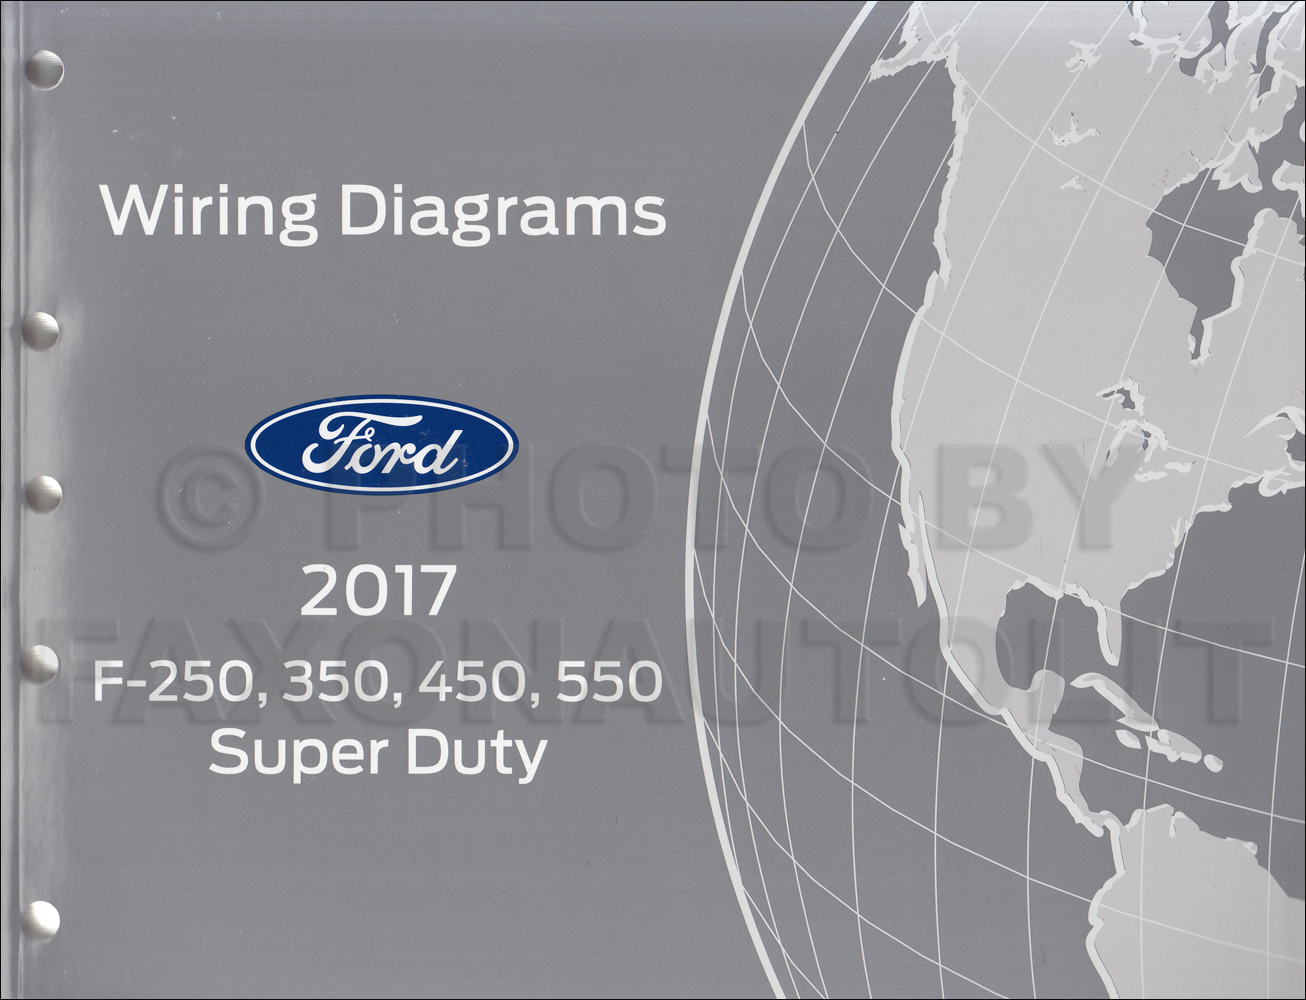 hight resolution of 2017 ford f250 f550 super dutytruck wiring diagram manual original ford dome light wiring diagram